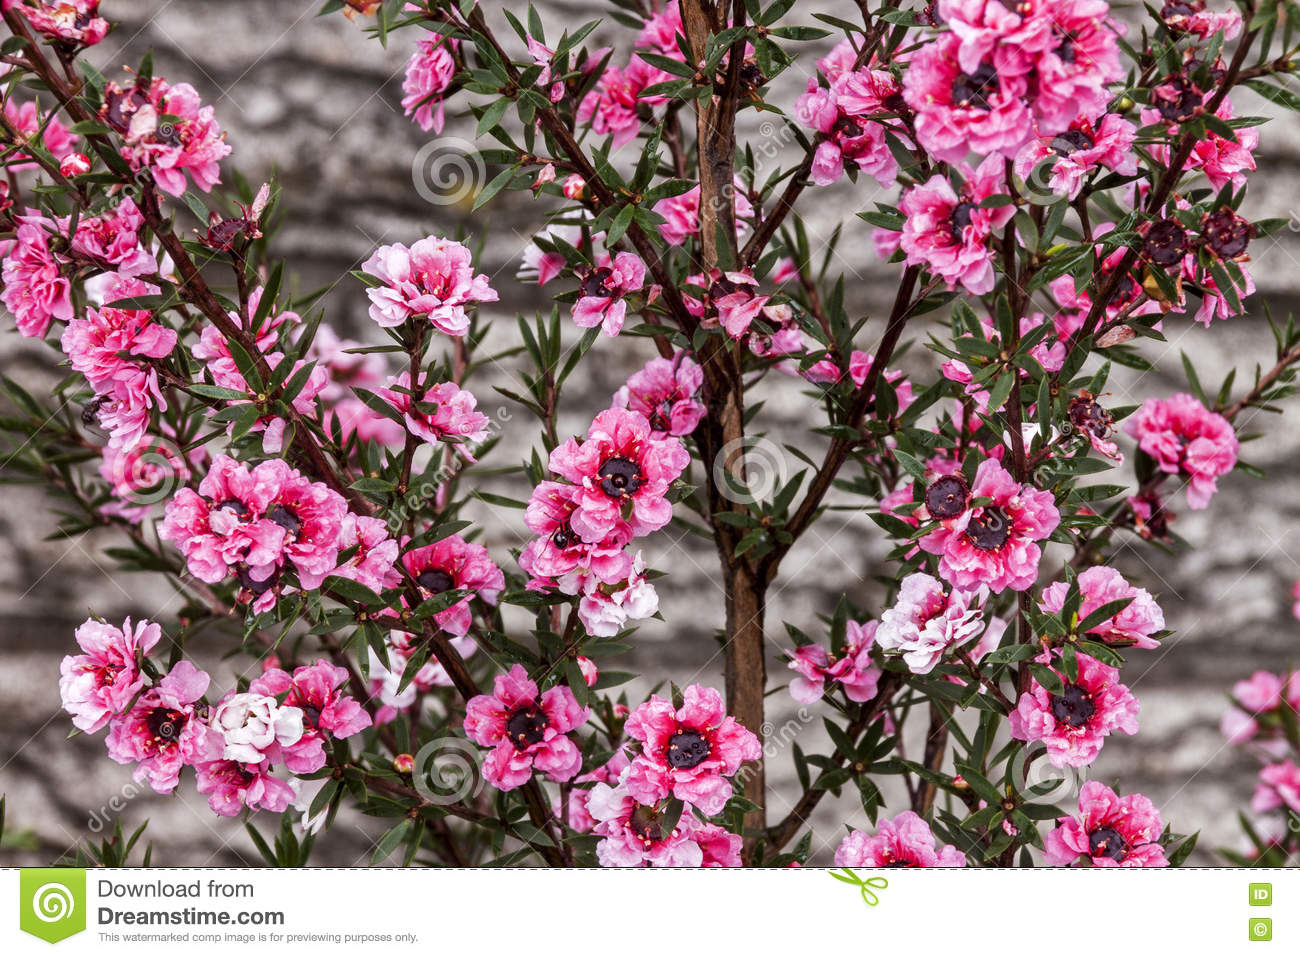 Small pink flower bush gallery flower decoration ideas shrub with small pink flowers gallery flower decoration ideas green bush with pink flowers image collections mightylinksfo